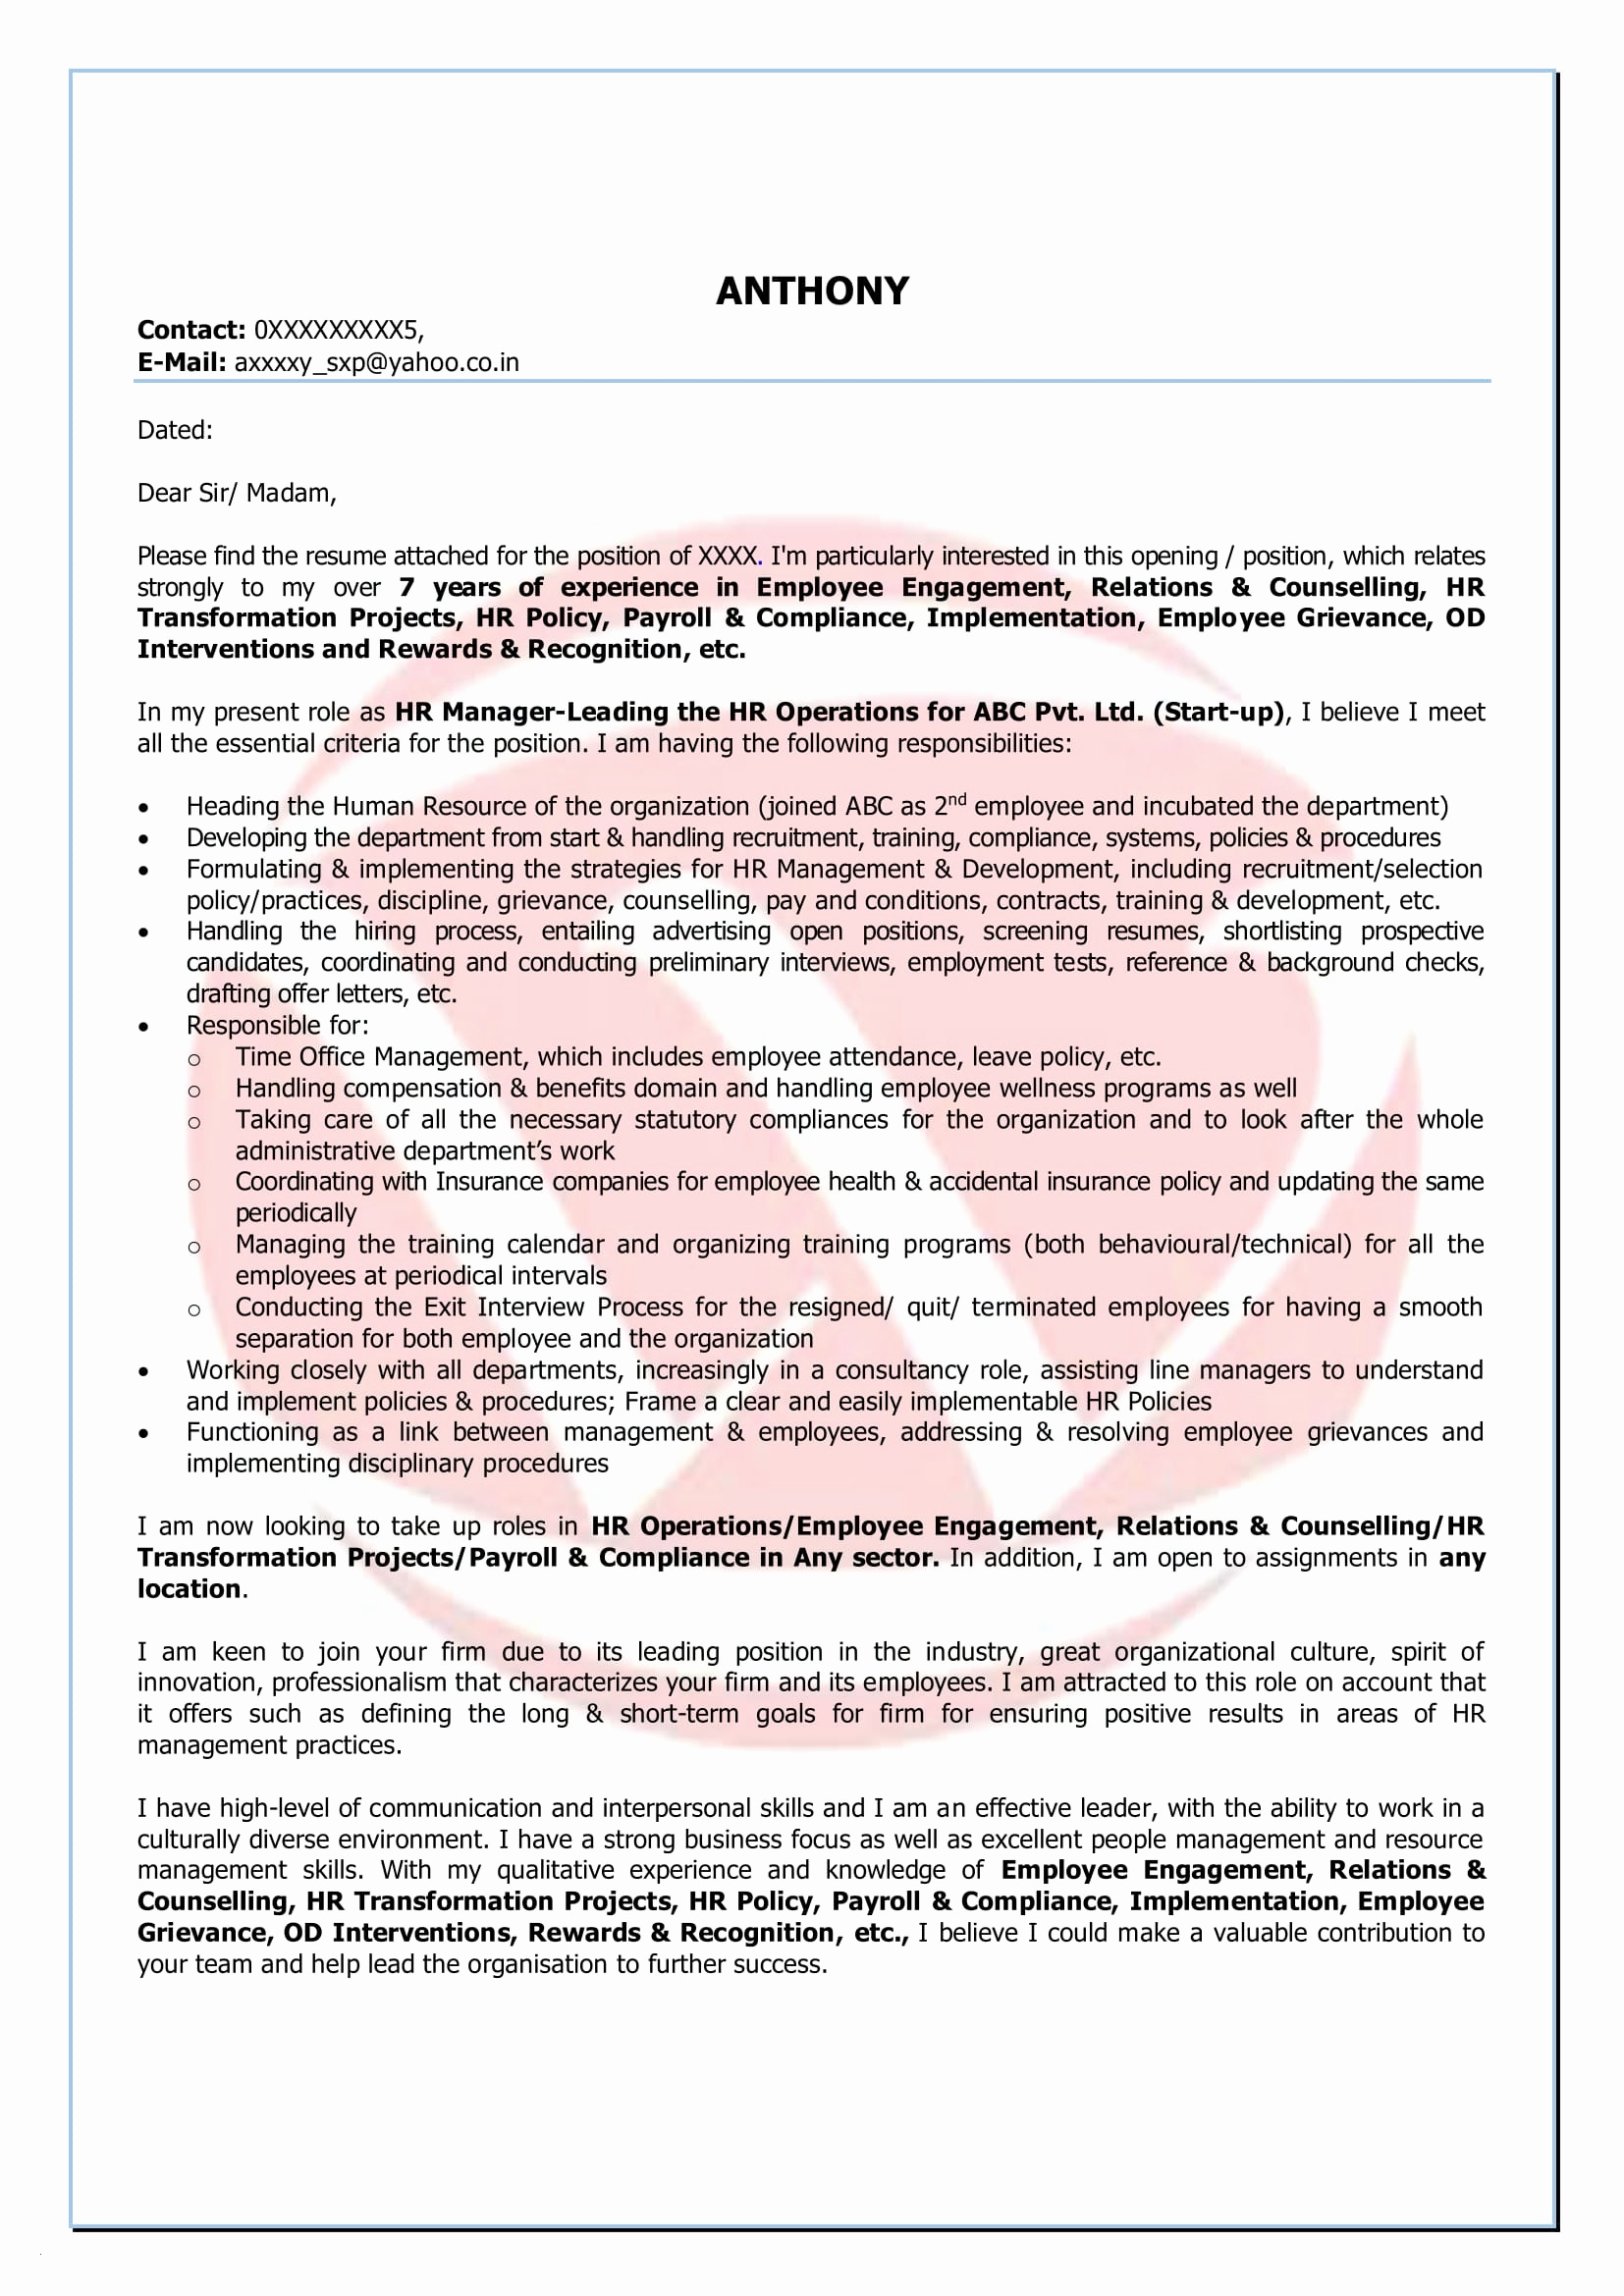 T format Cover Letter Template - Simple Resume Cover Letter format Legalsocialmobilitypartnership